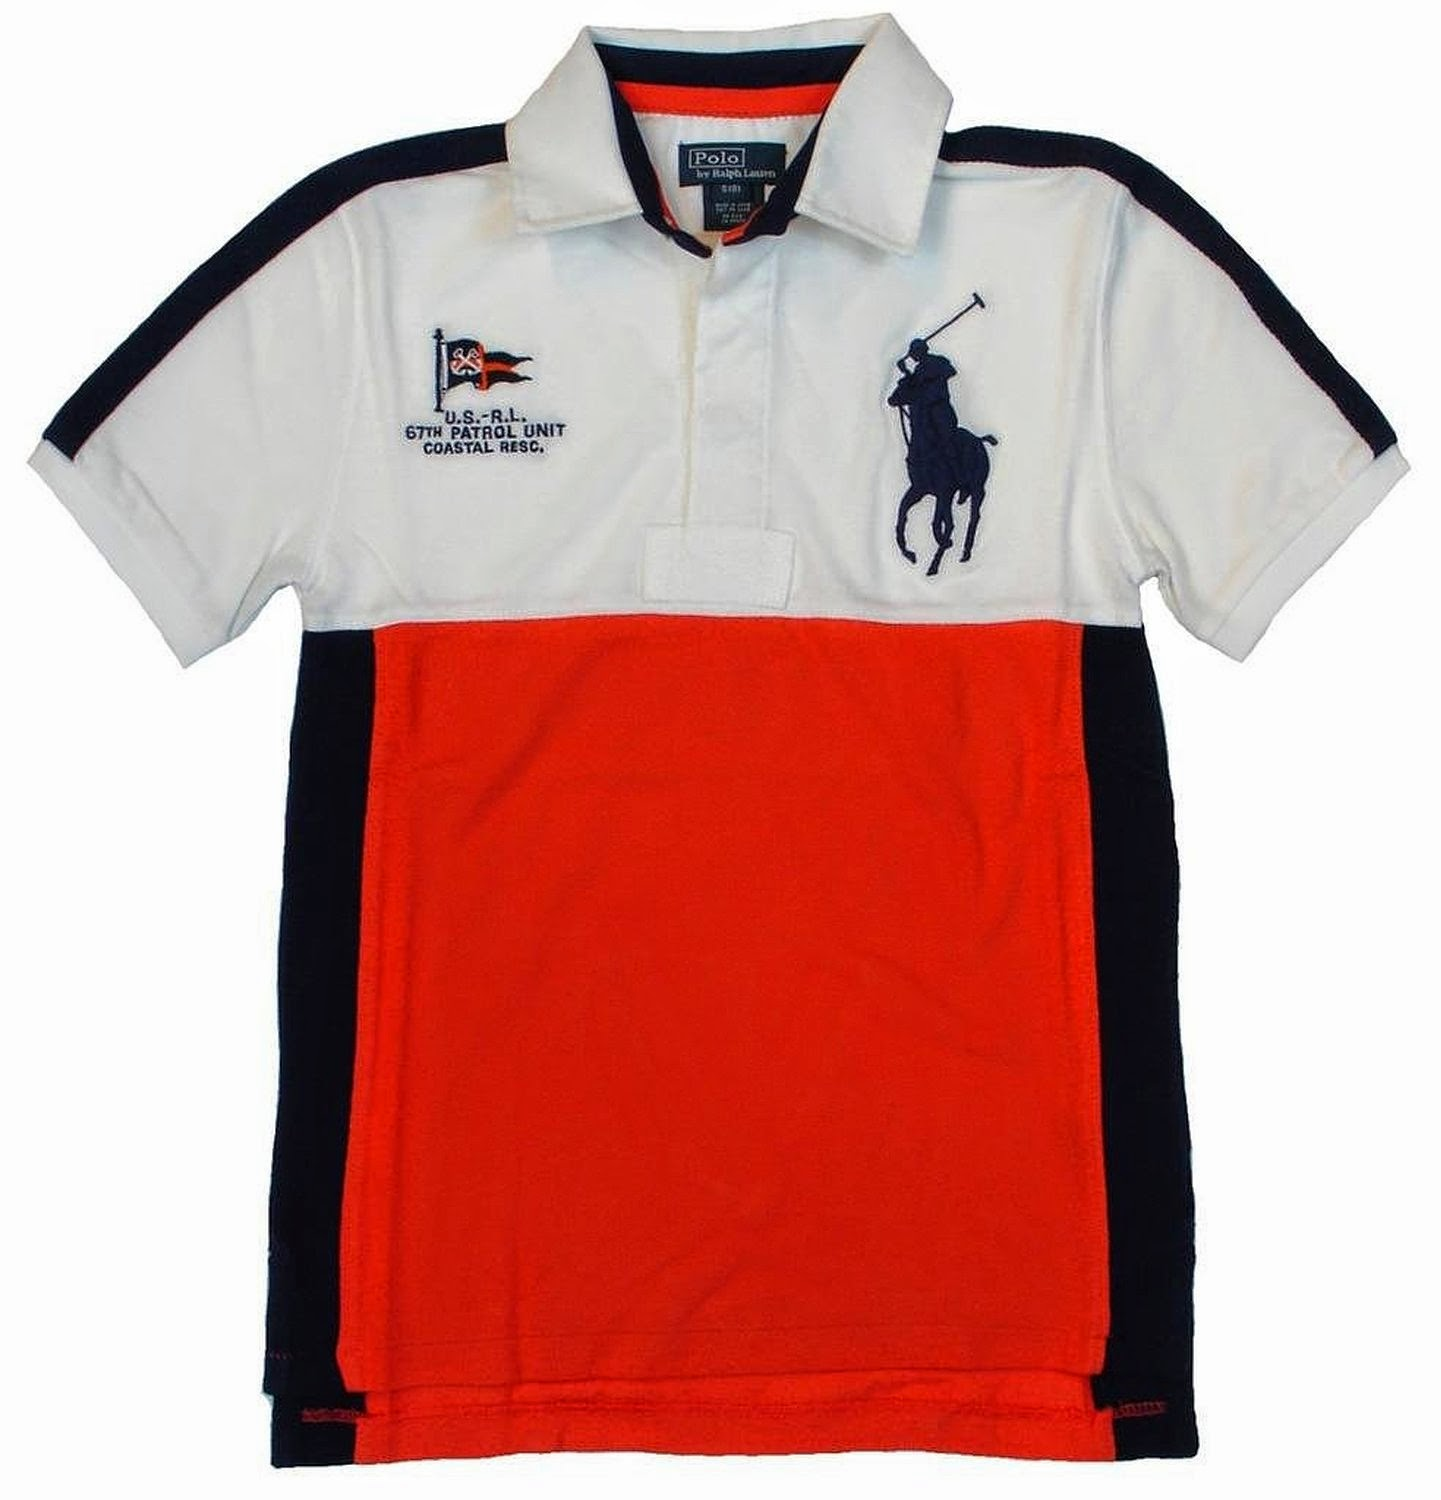 White Polo Shirts For Boys Images Pictures   Becuo